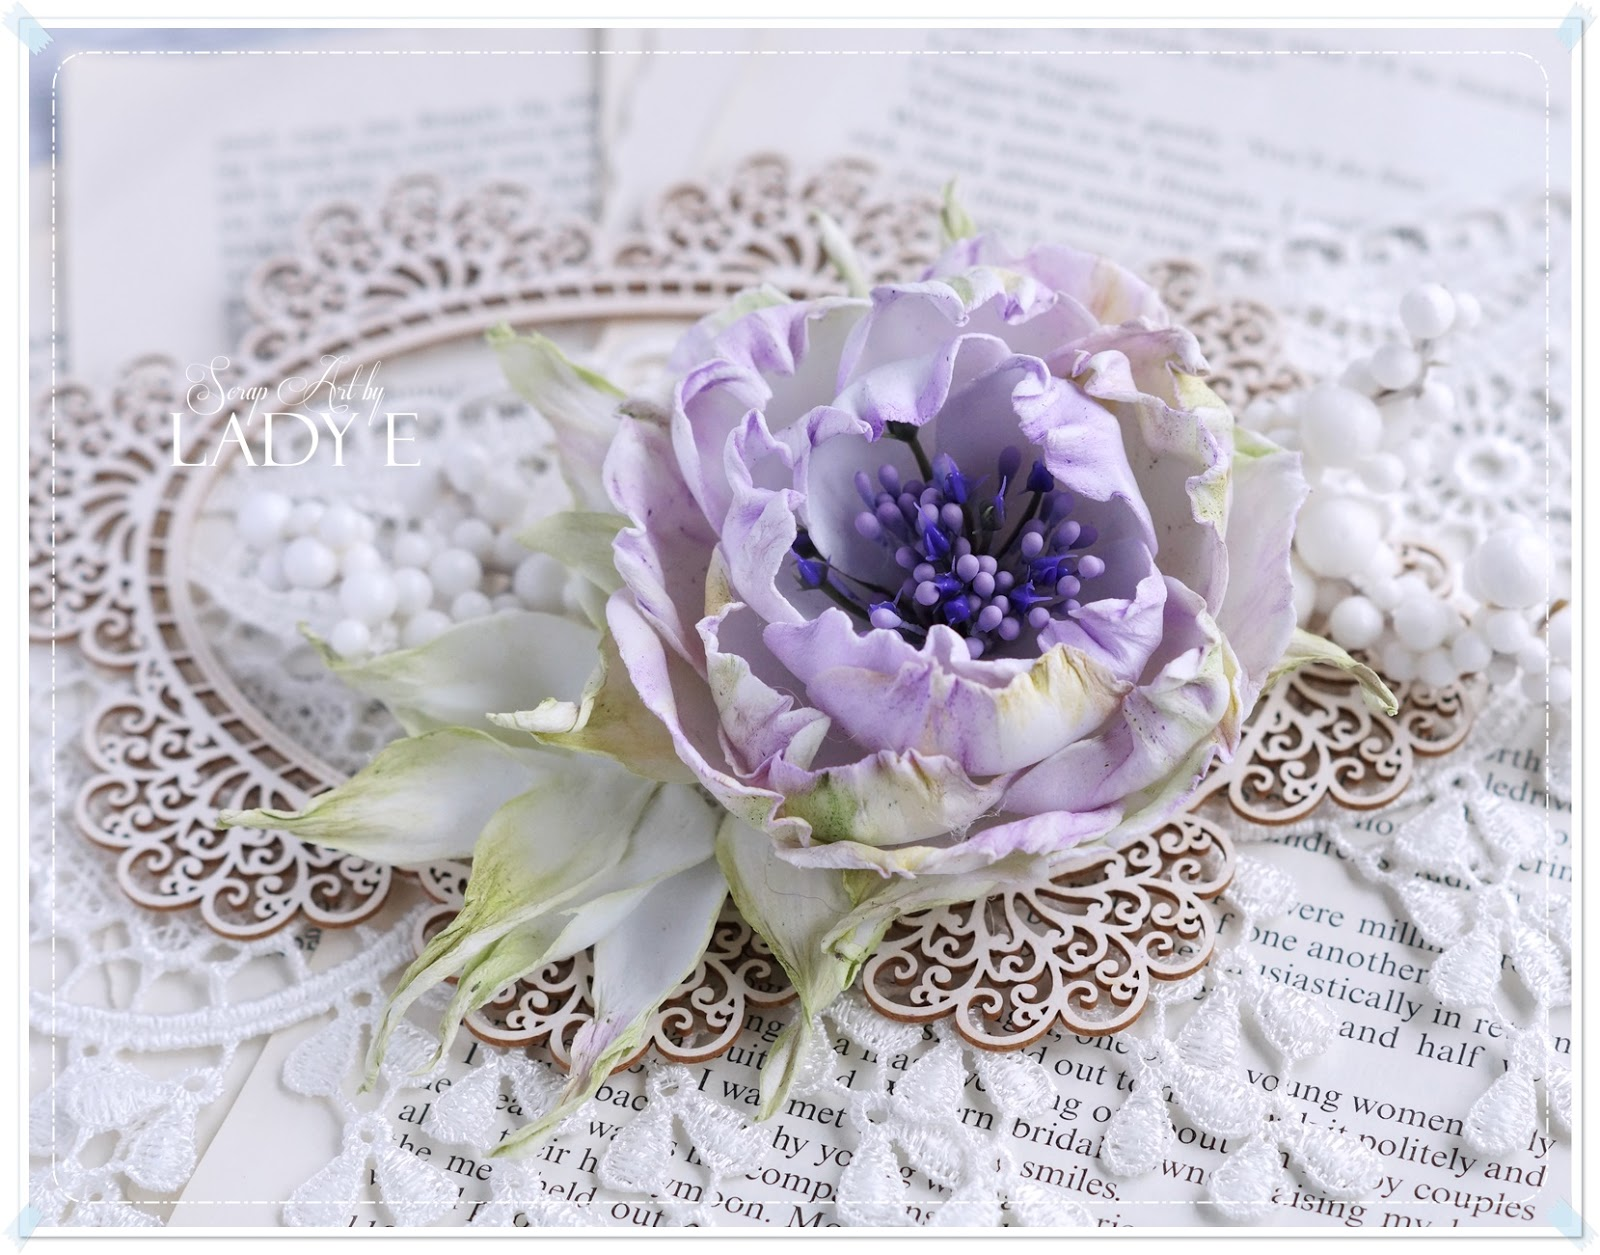 The Flower Could Be Used As A Brooch Hair Clip Or Embellish Your Home Decor